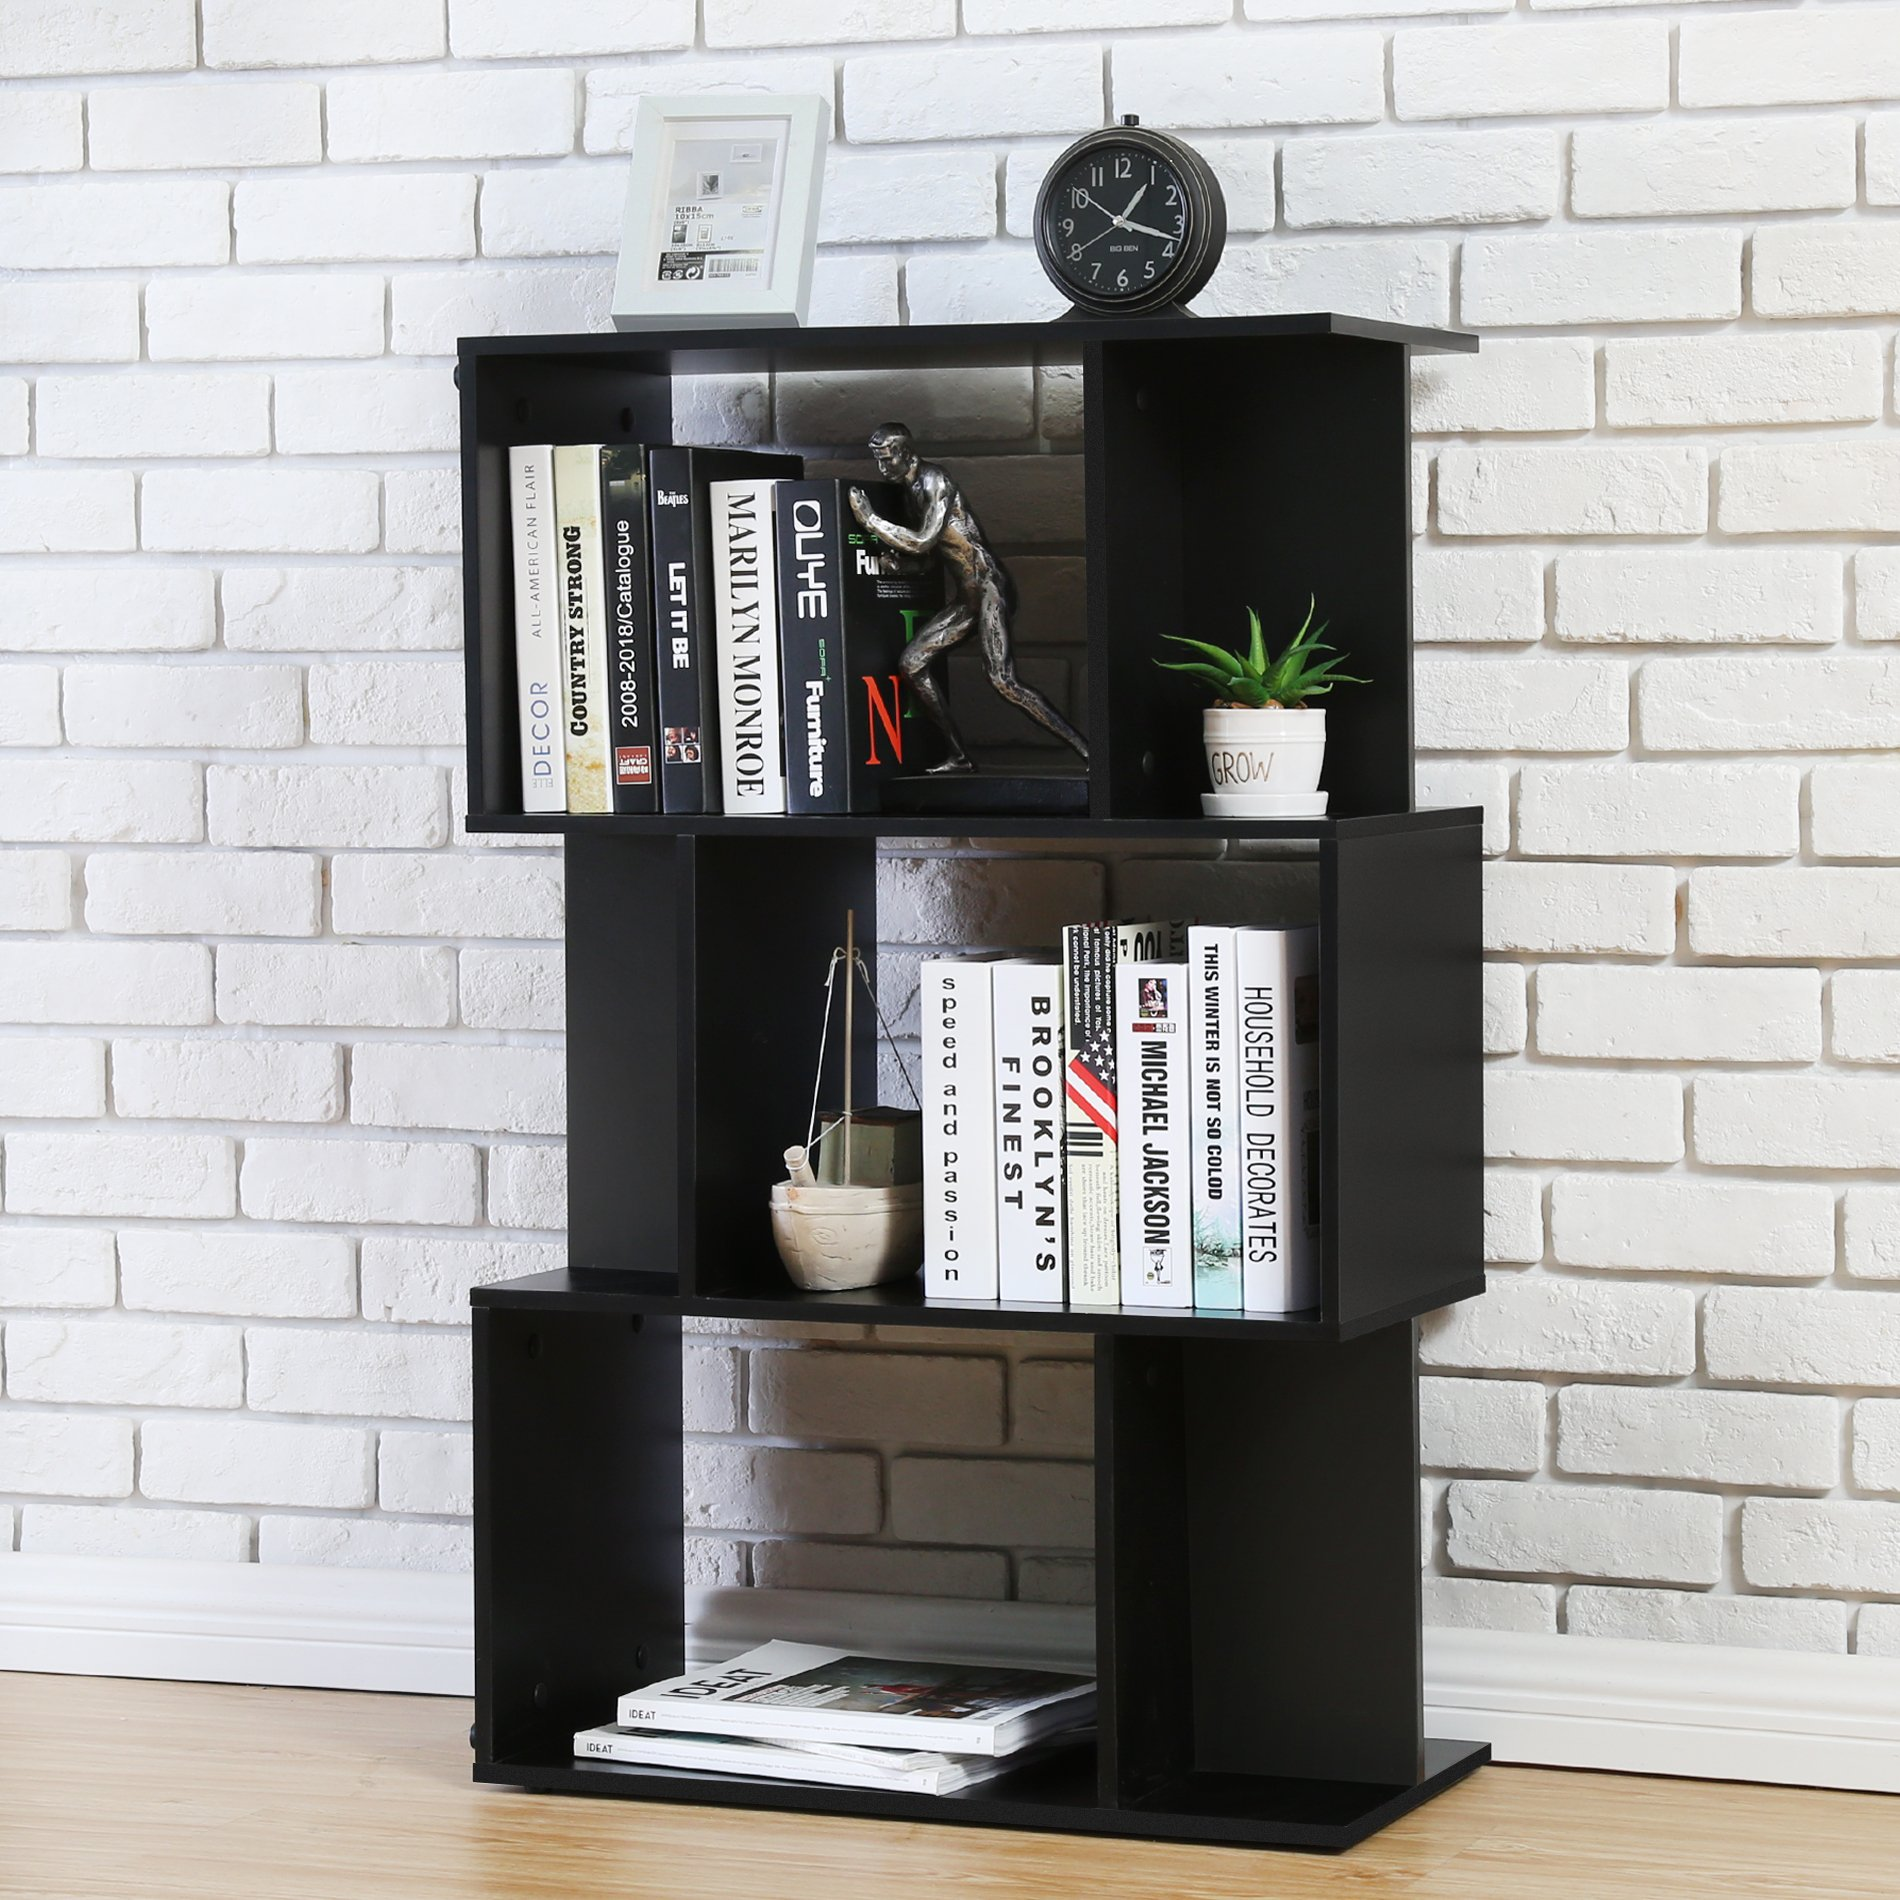 Homury Modern Wood Bookcase Storage Shelving Stand Bookshelf MultiMedia Storage Cabinet Organizer Black